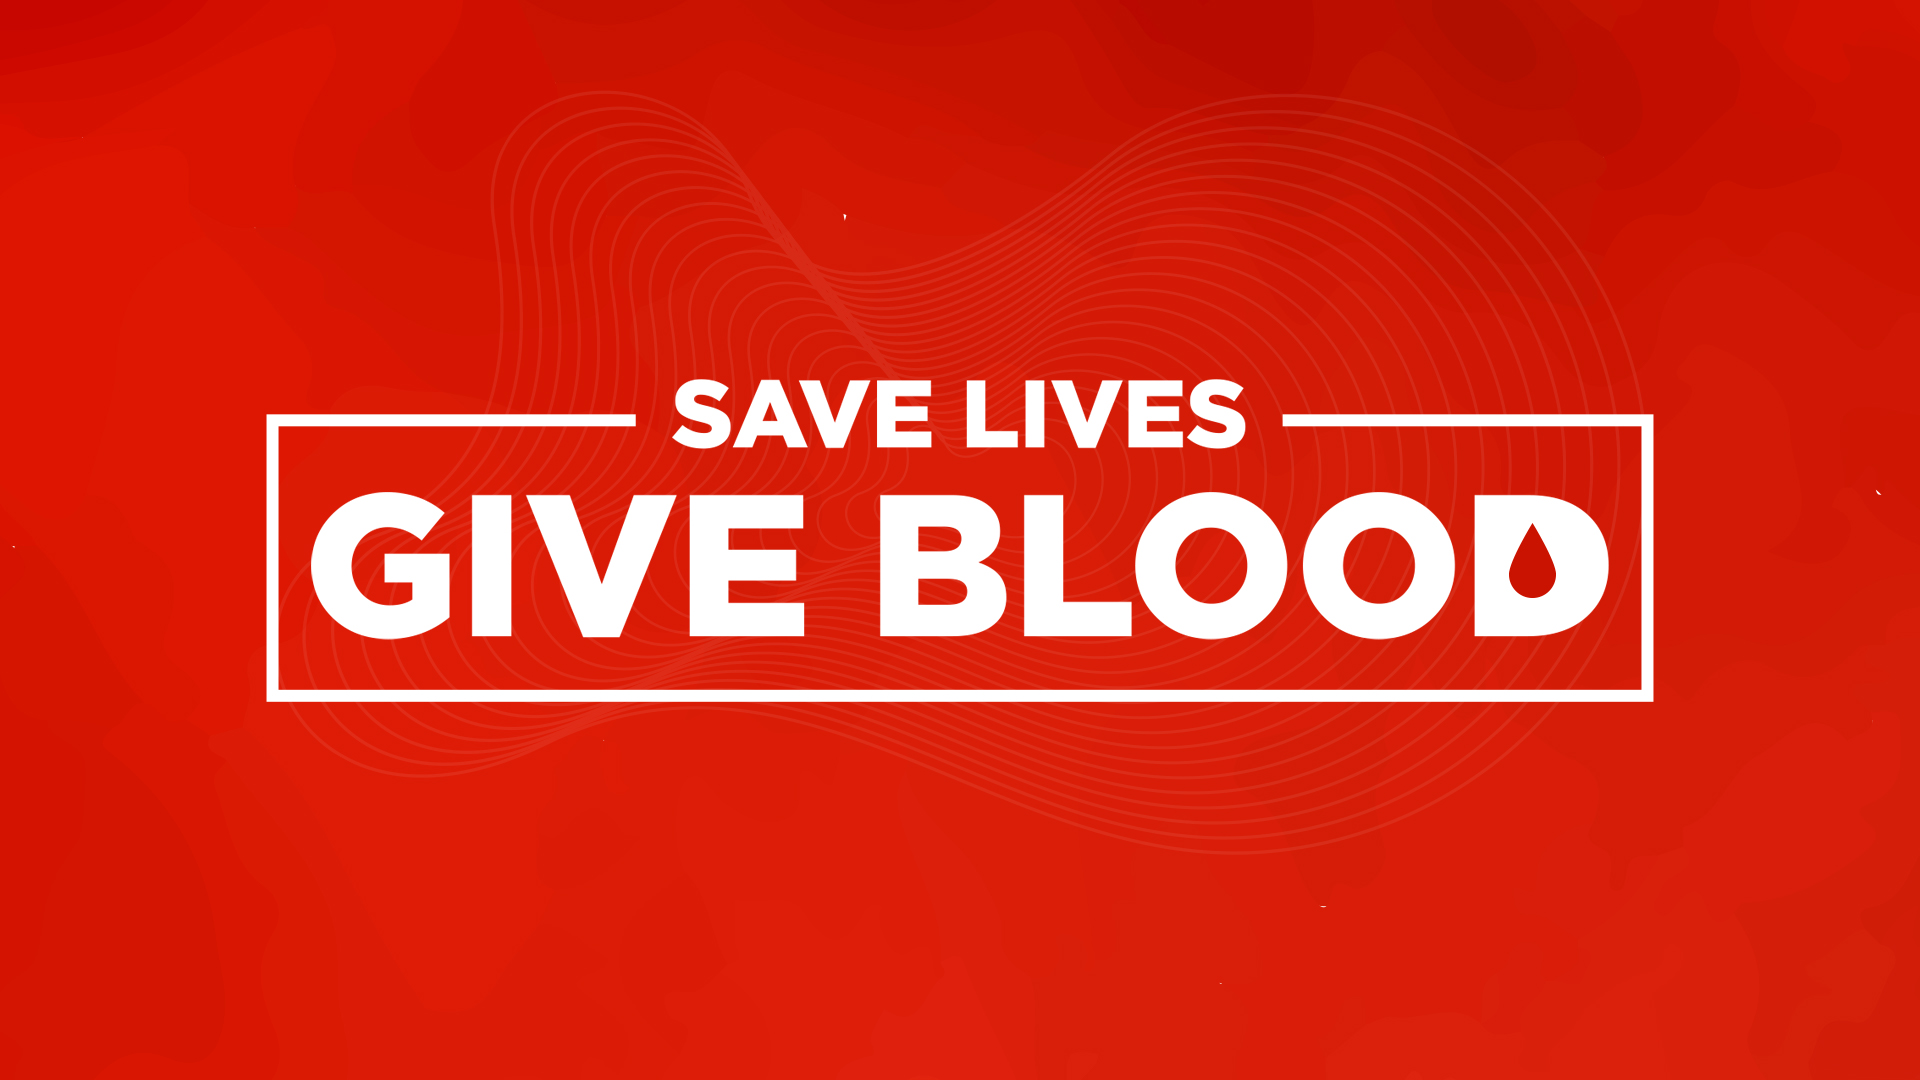 Save Lives Give Blood